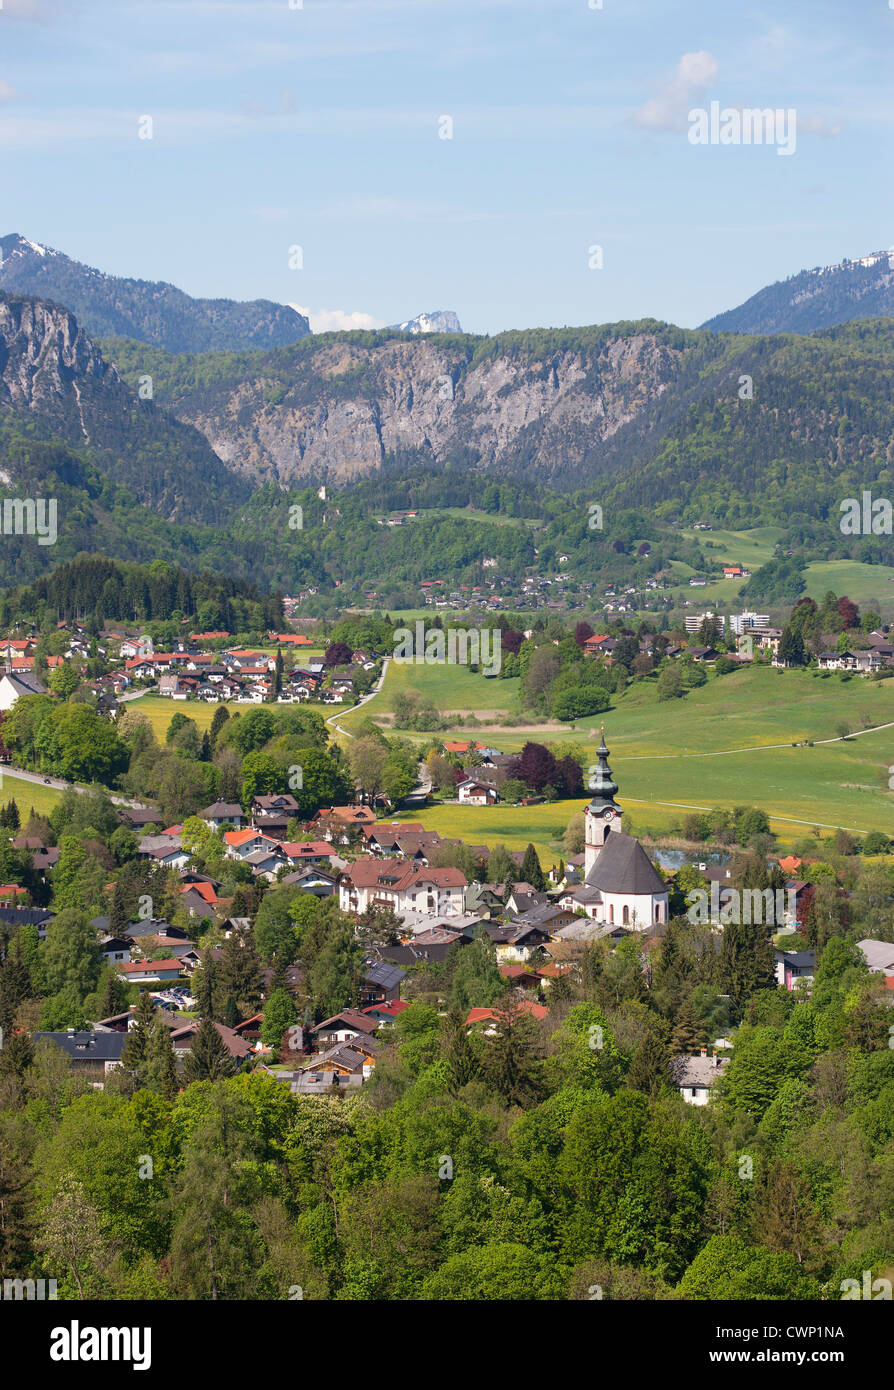 Germany, Bavaria, View of Bayrisch Gmain with Latten mountains in background - Stock Image